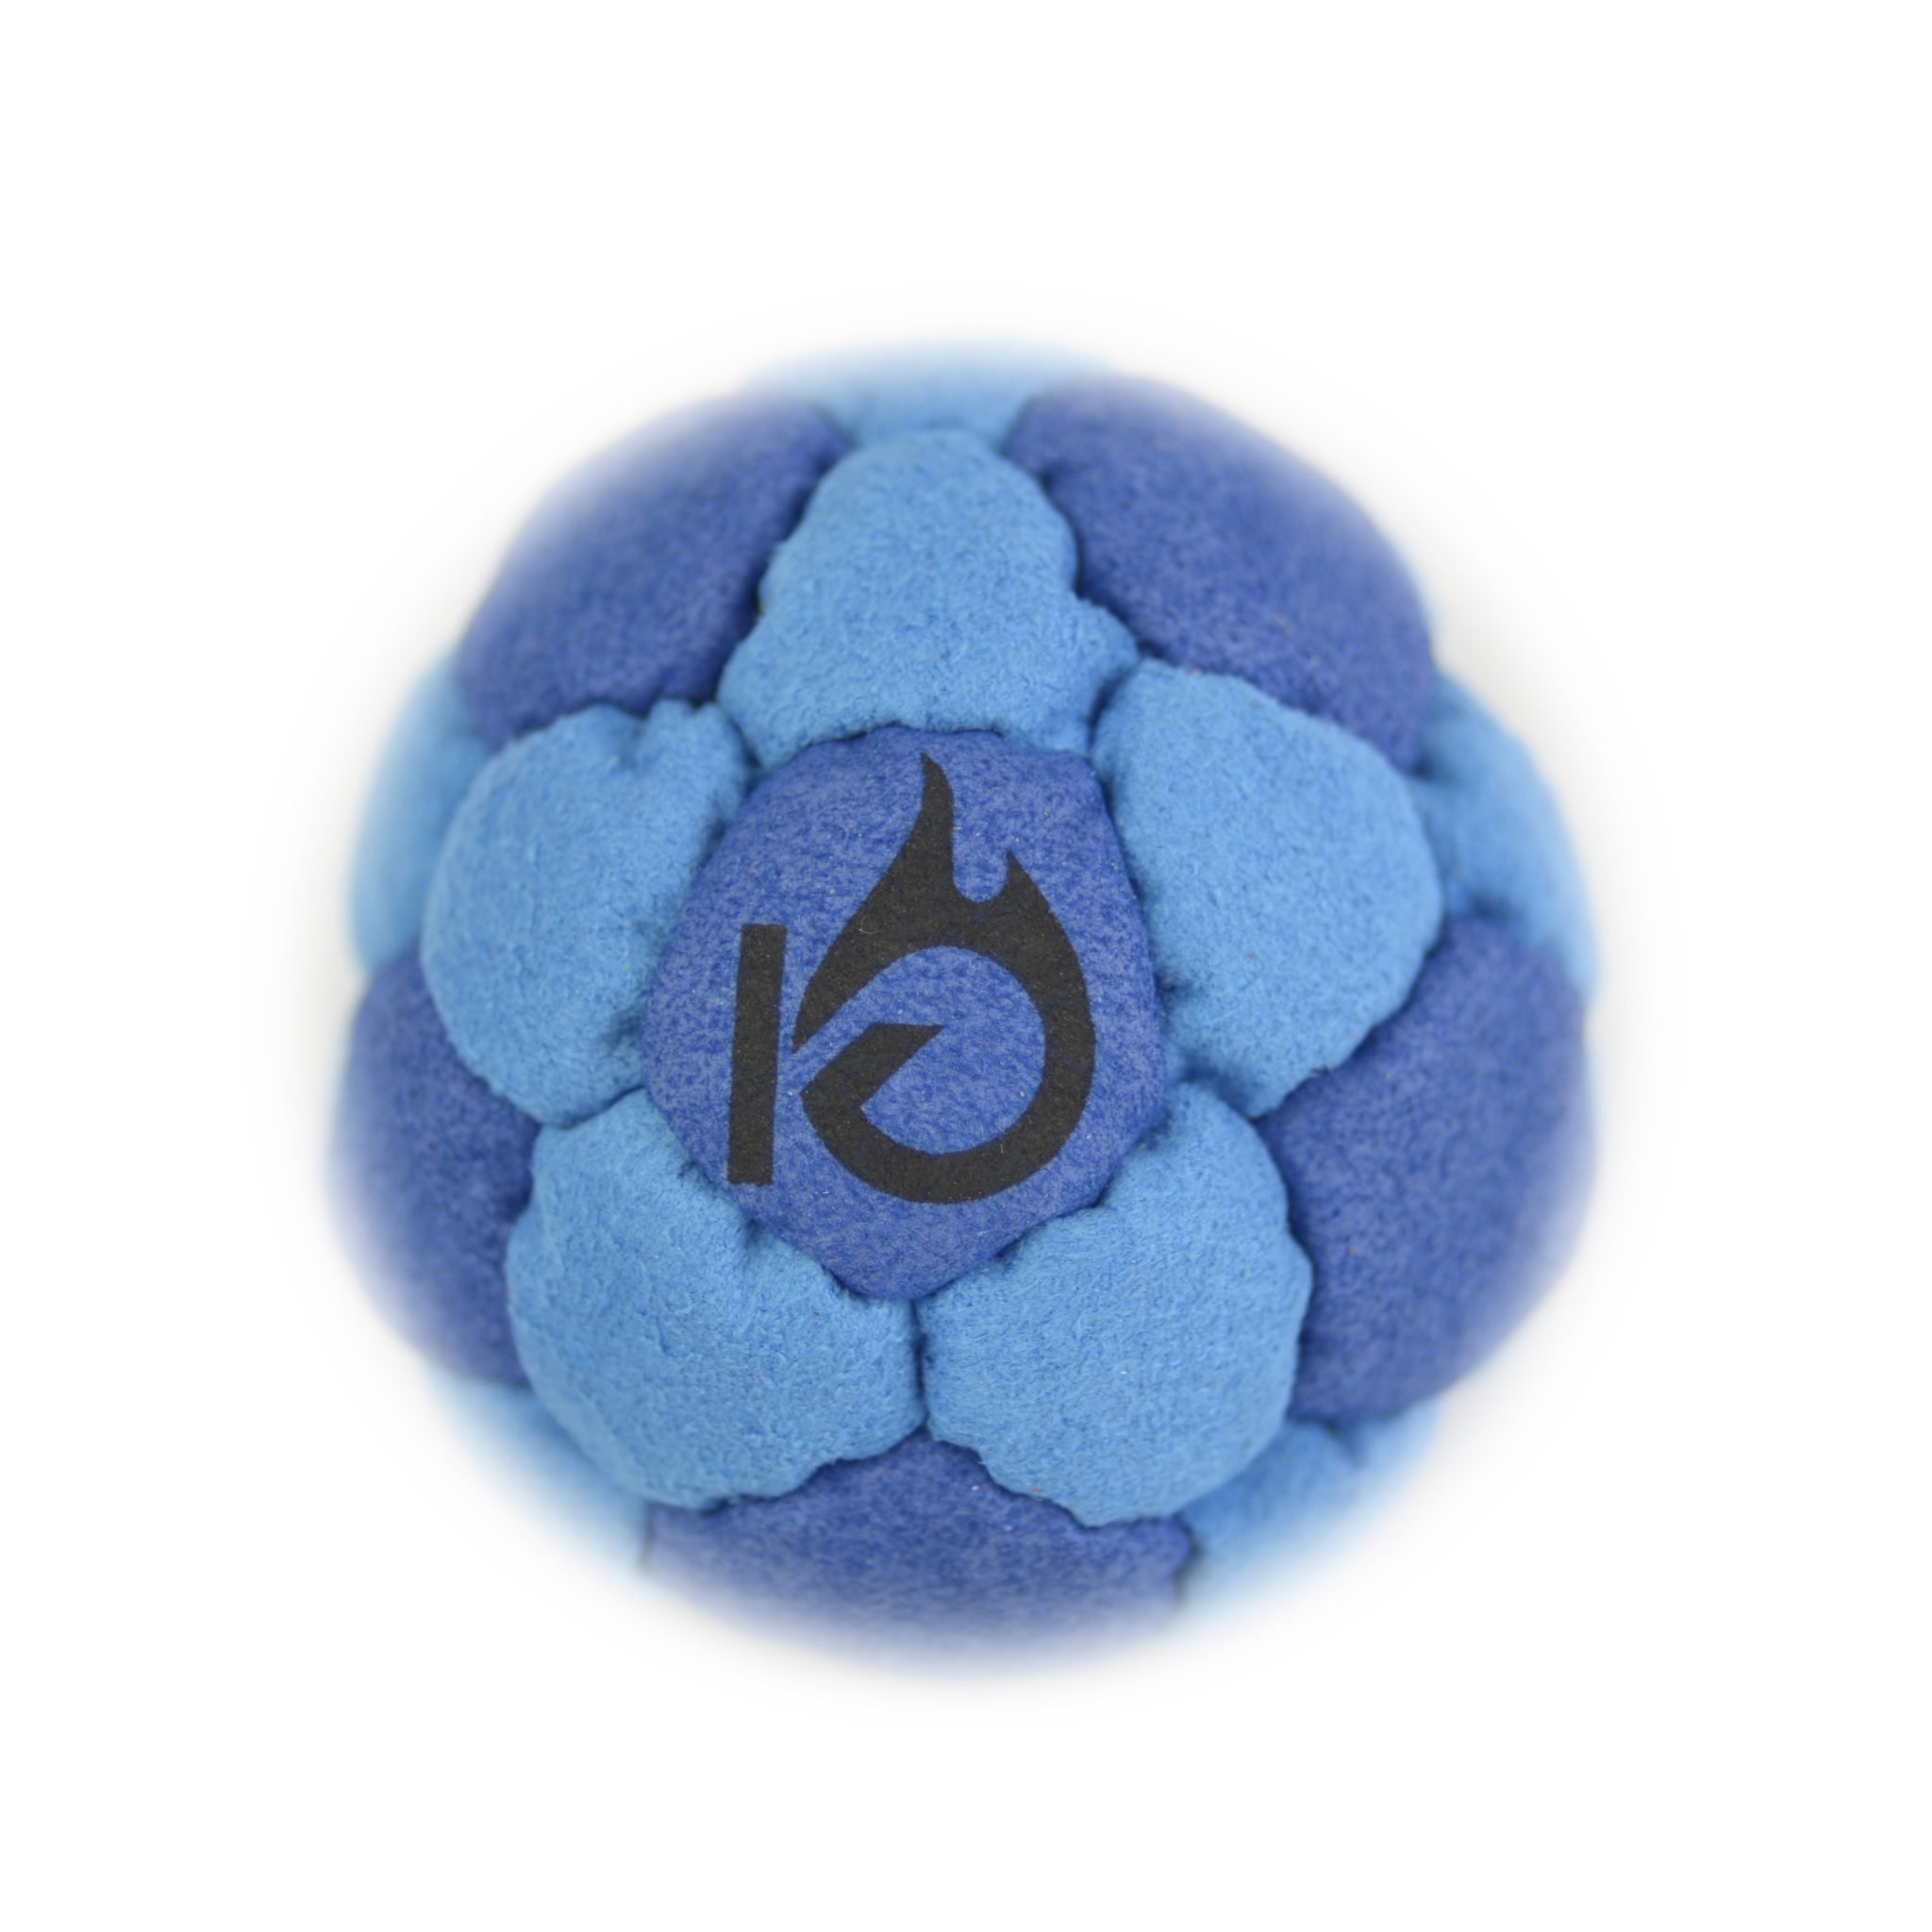 KickFire SuperSacks Ocean Swell Sand Filled Hacky Sack 16 Panel Leather Footbag | BONUS Video Quick Start Tips | Best for Kids, Teens and Adults